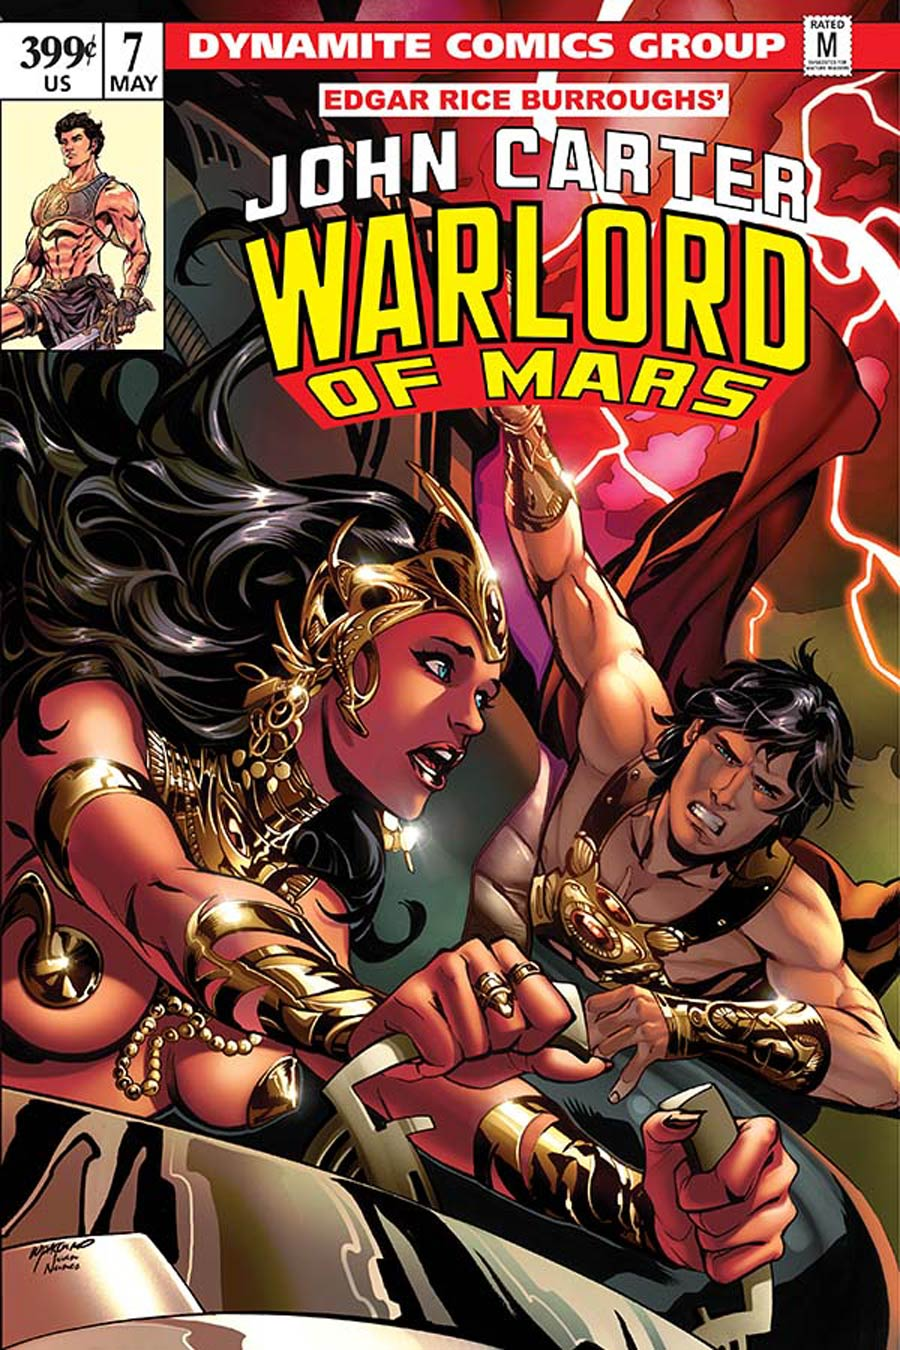 John Carter Warlord Of Mars Vol 2 #7 Cover C Variant Emanuela Lupacchino Cover